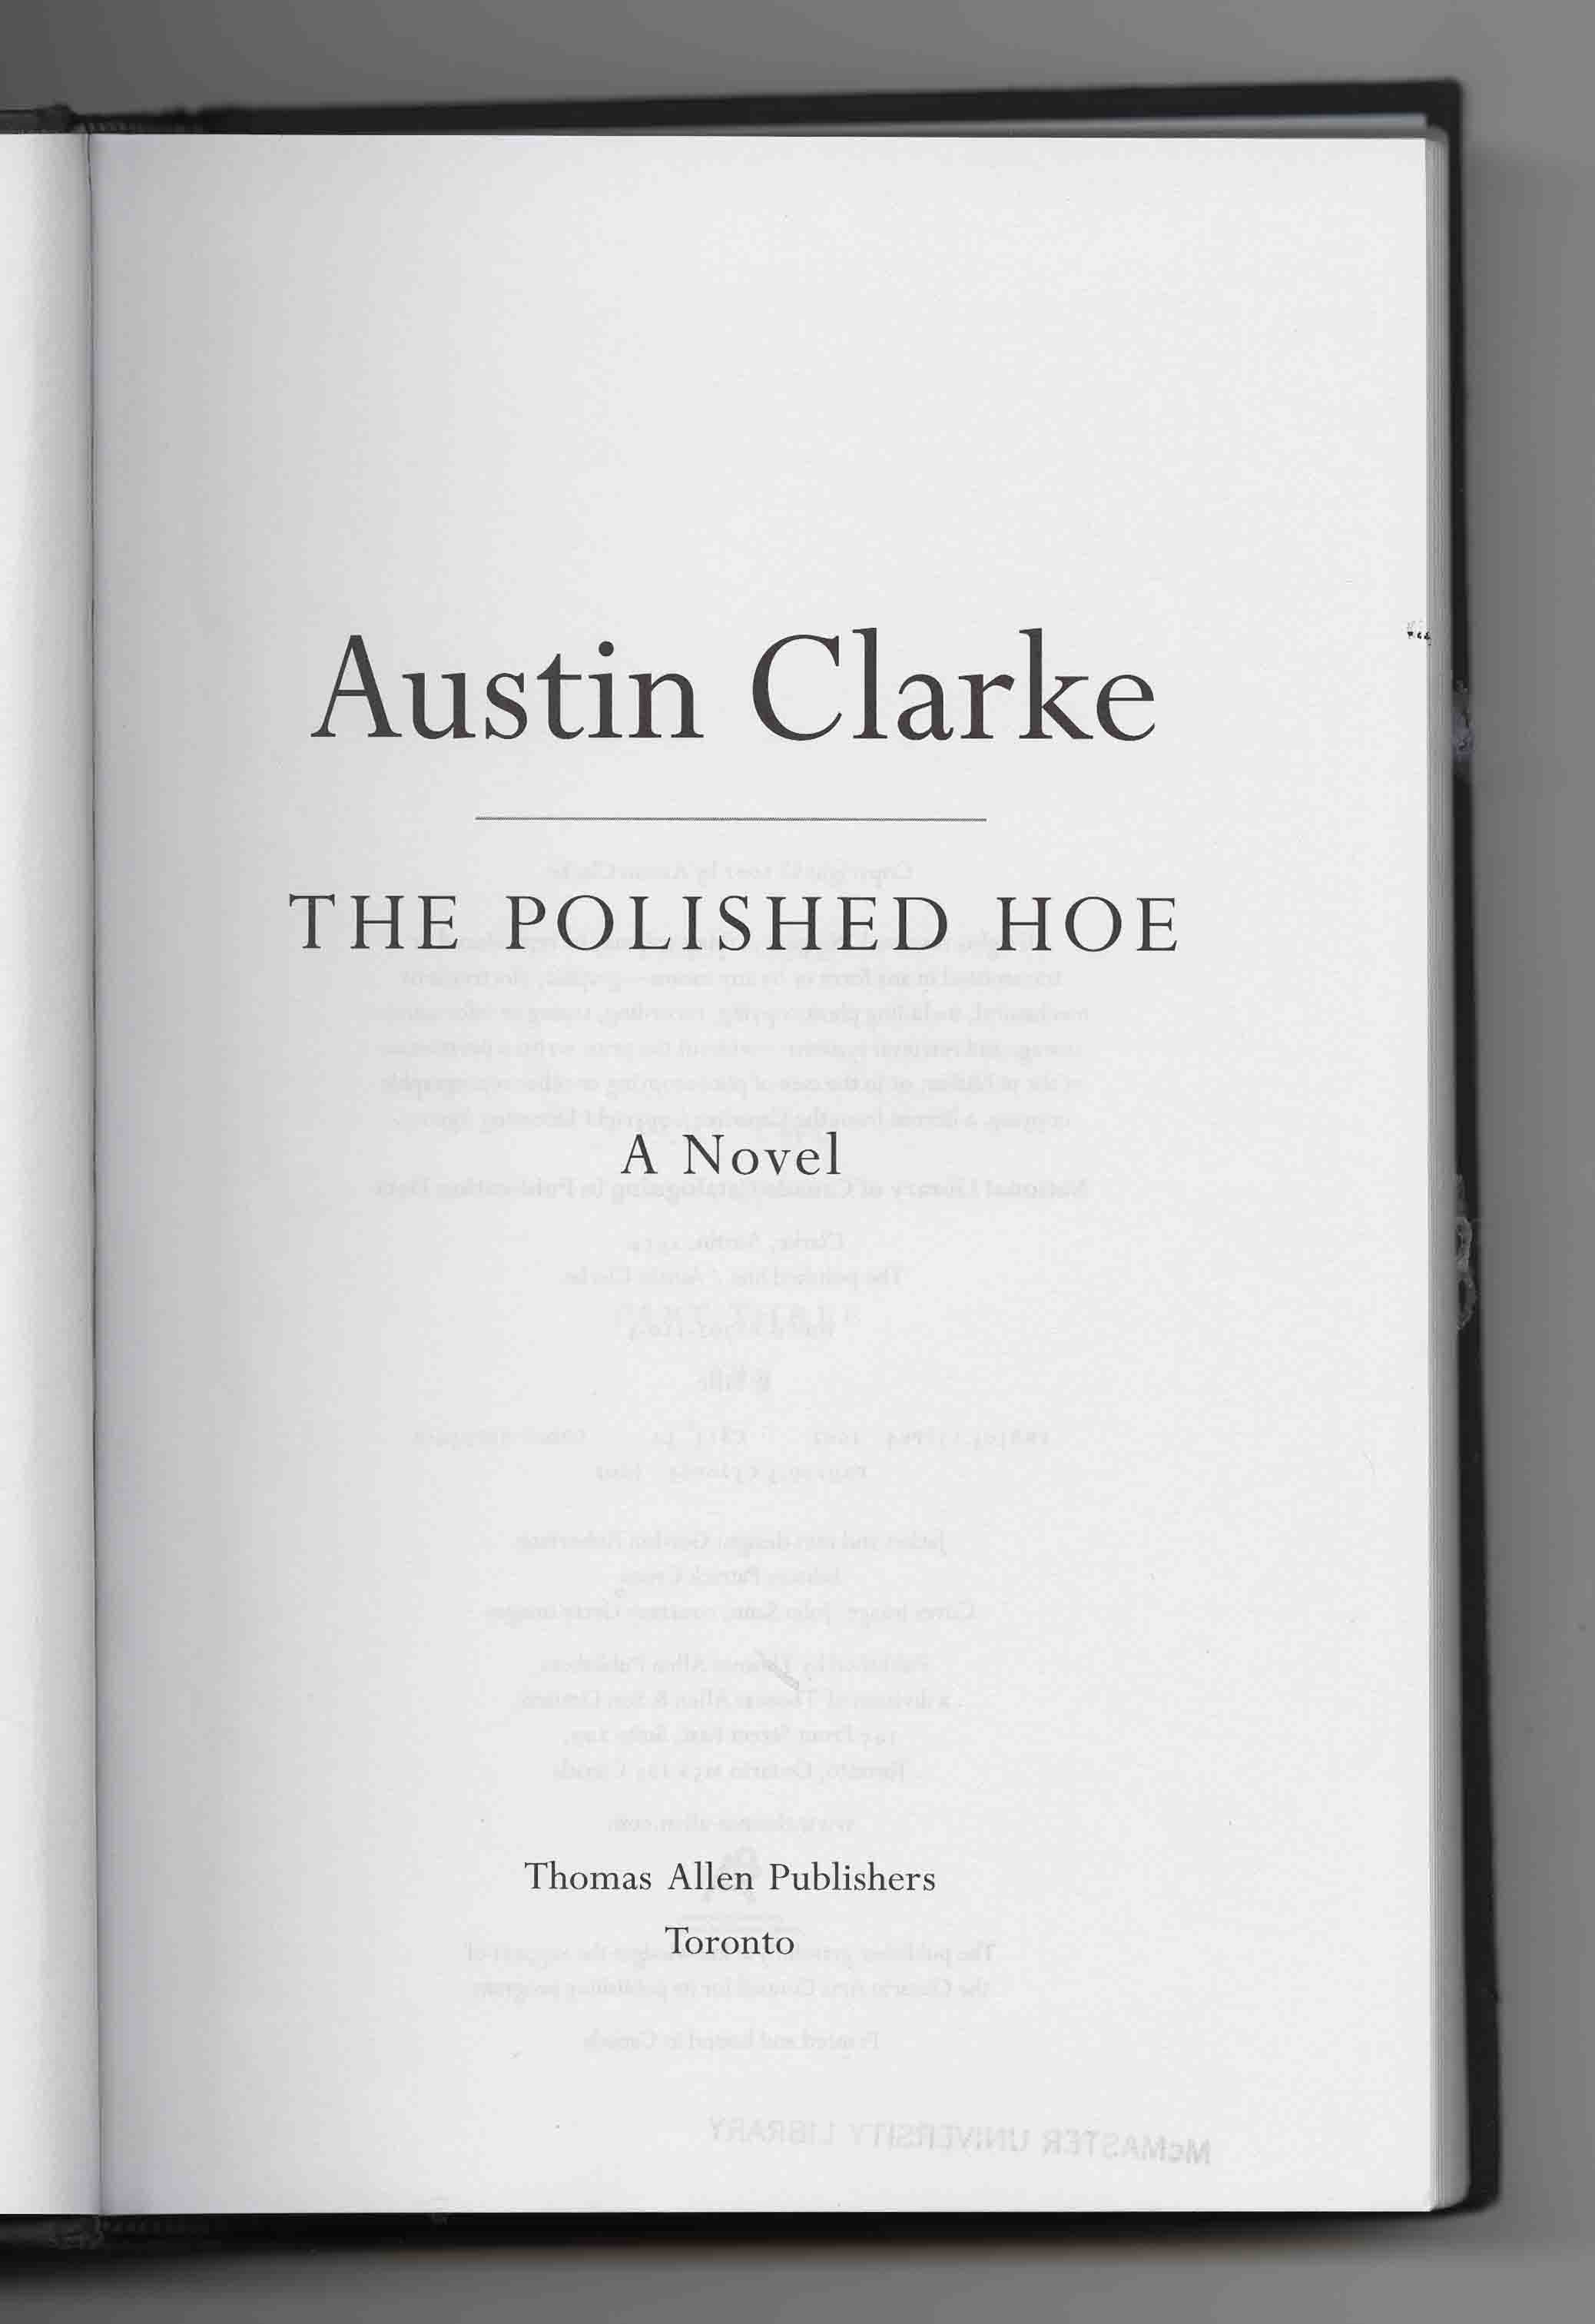 the polished hoe essay Looking for books by austin clarke see all books authored by austin clarke, including the polished hoe, and pig tails n breadfruit: a culinary memoir, and more on thriftbookscom.